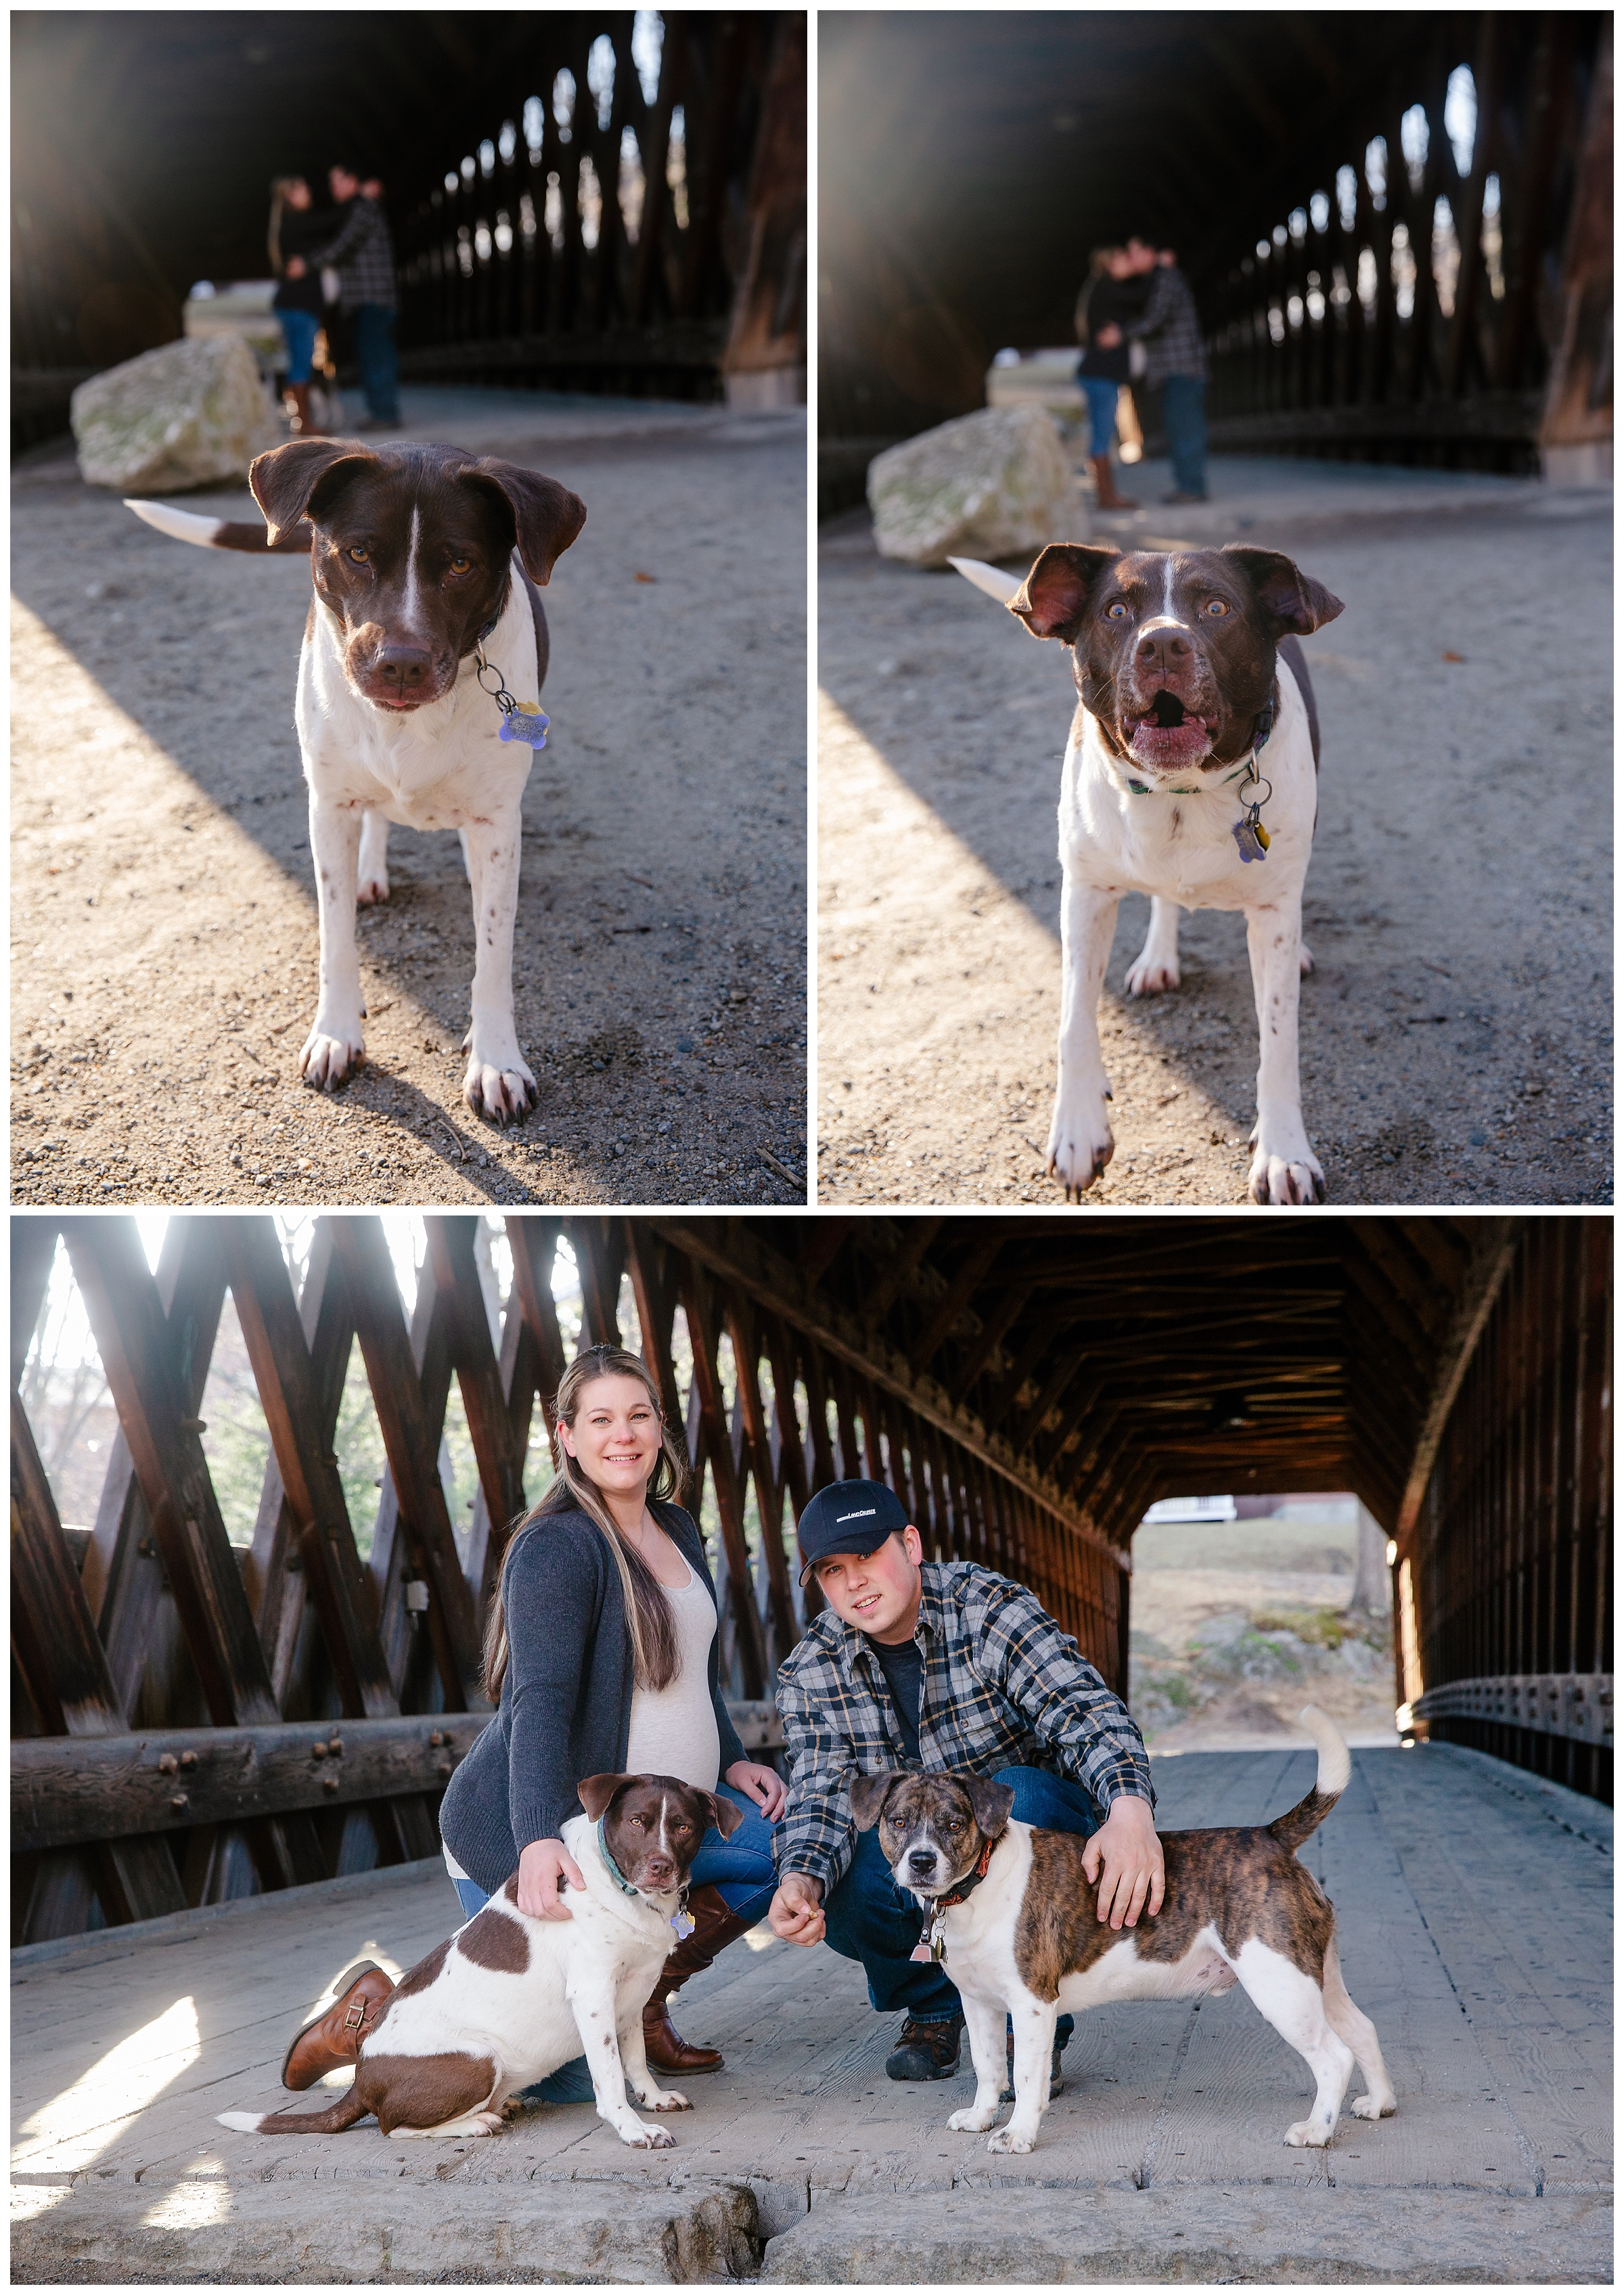 Apr,April,BLM,Ben Mailhot,Brianna Morrissey,Brie Morrissey,Covered Bridge,Dog,Kaylea Brandl,Kaylea-Ben_Maternity,Maternity,Pet Maternity,Photo,Photographer,Photography,www.blmphoto.com/contact,©BLM Photography 2019,